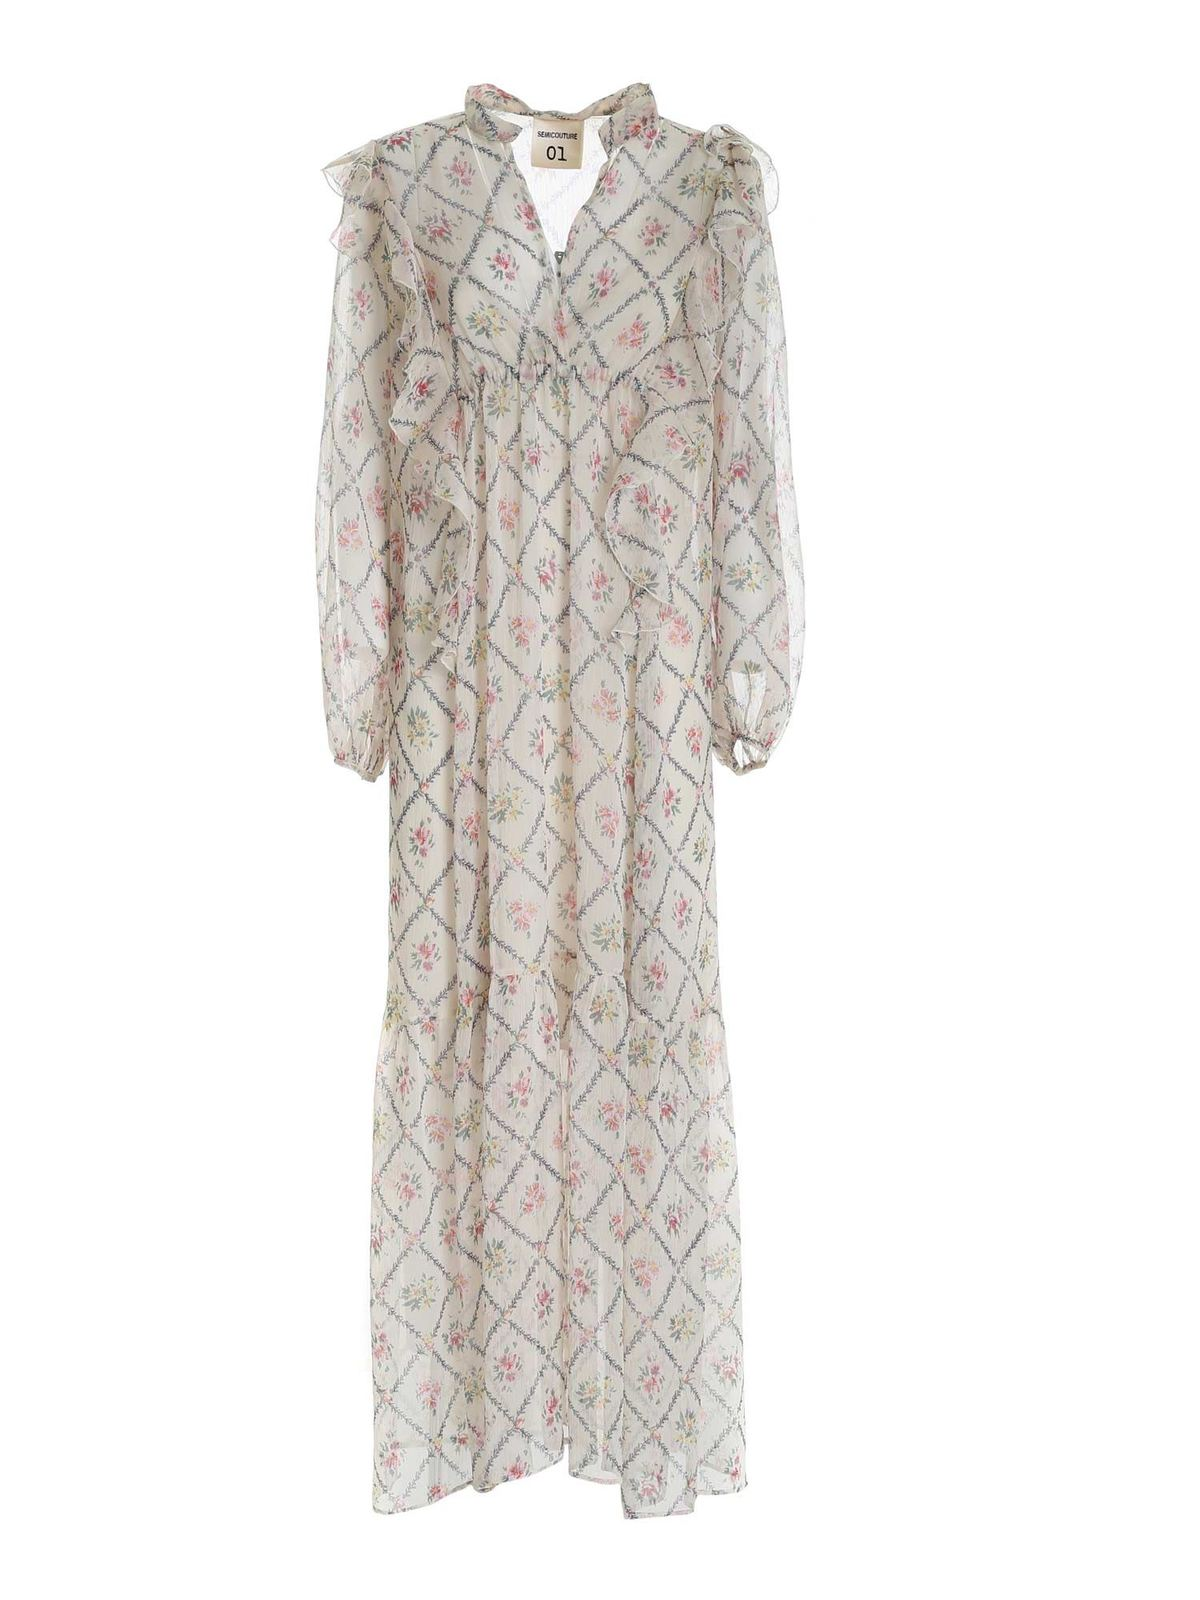 Semicouture FLORENCE DRESS IN BEIGE